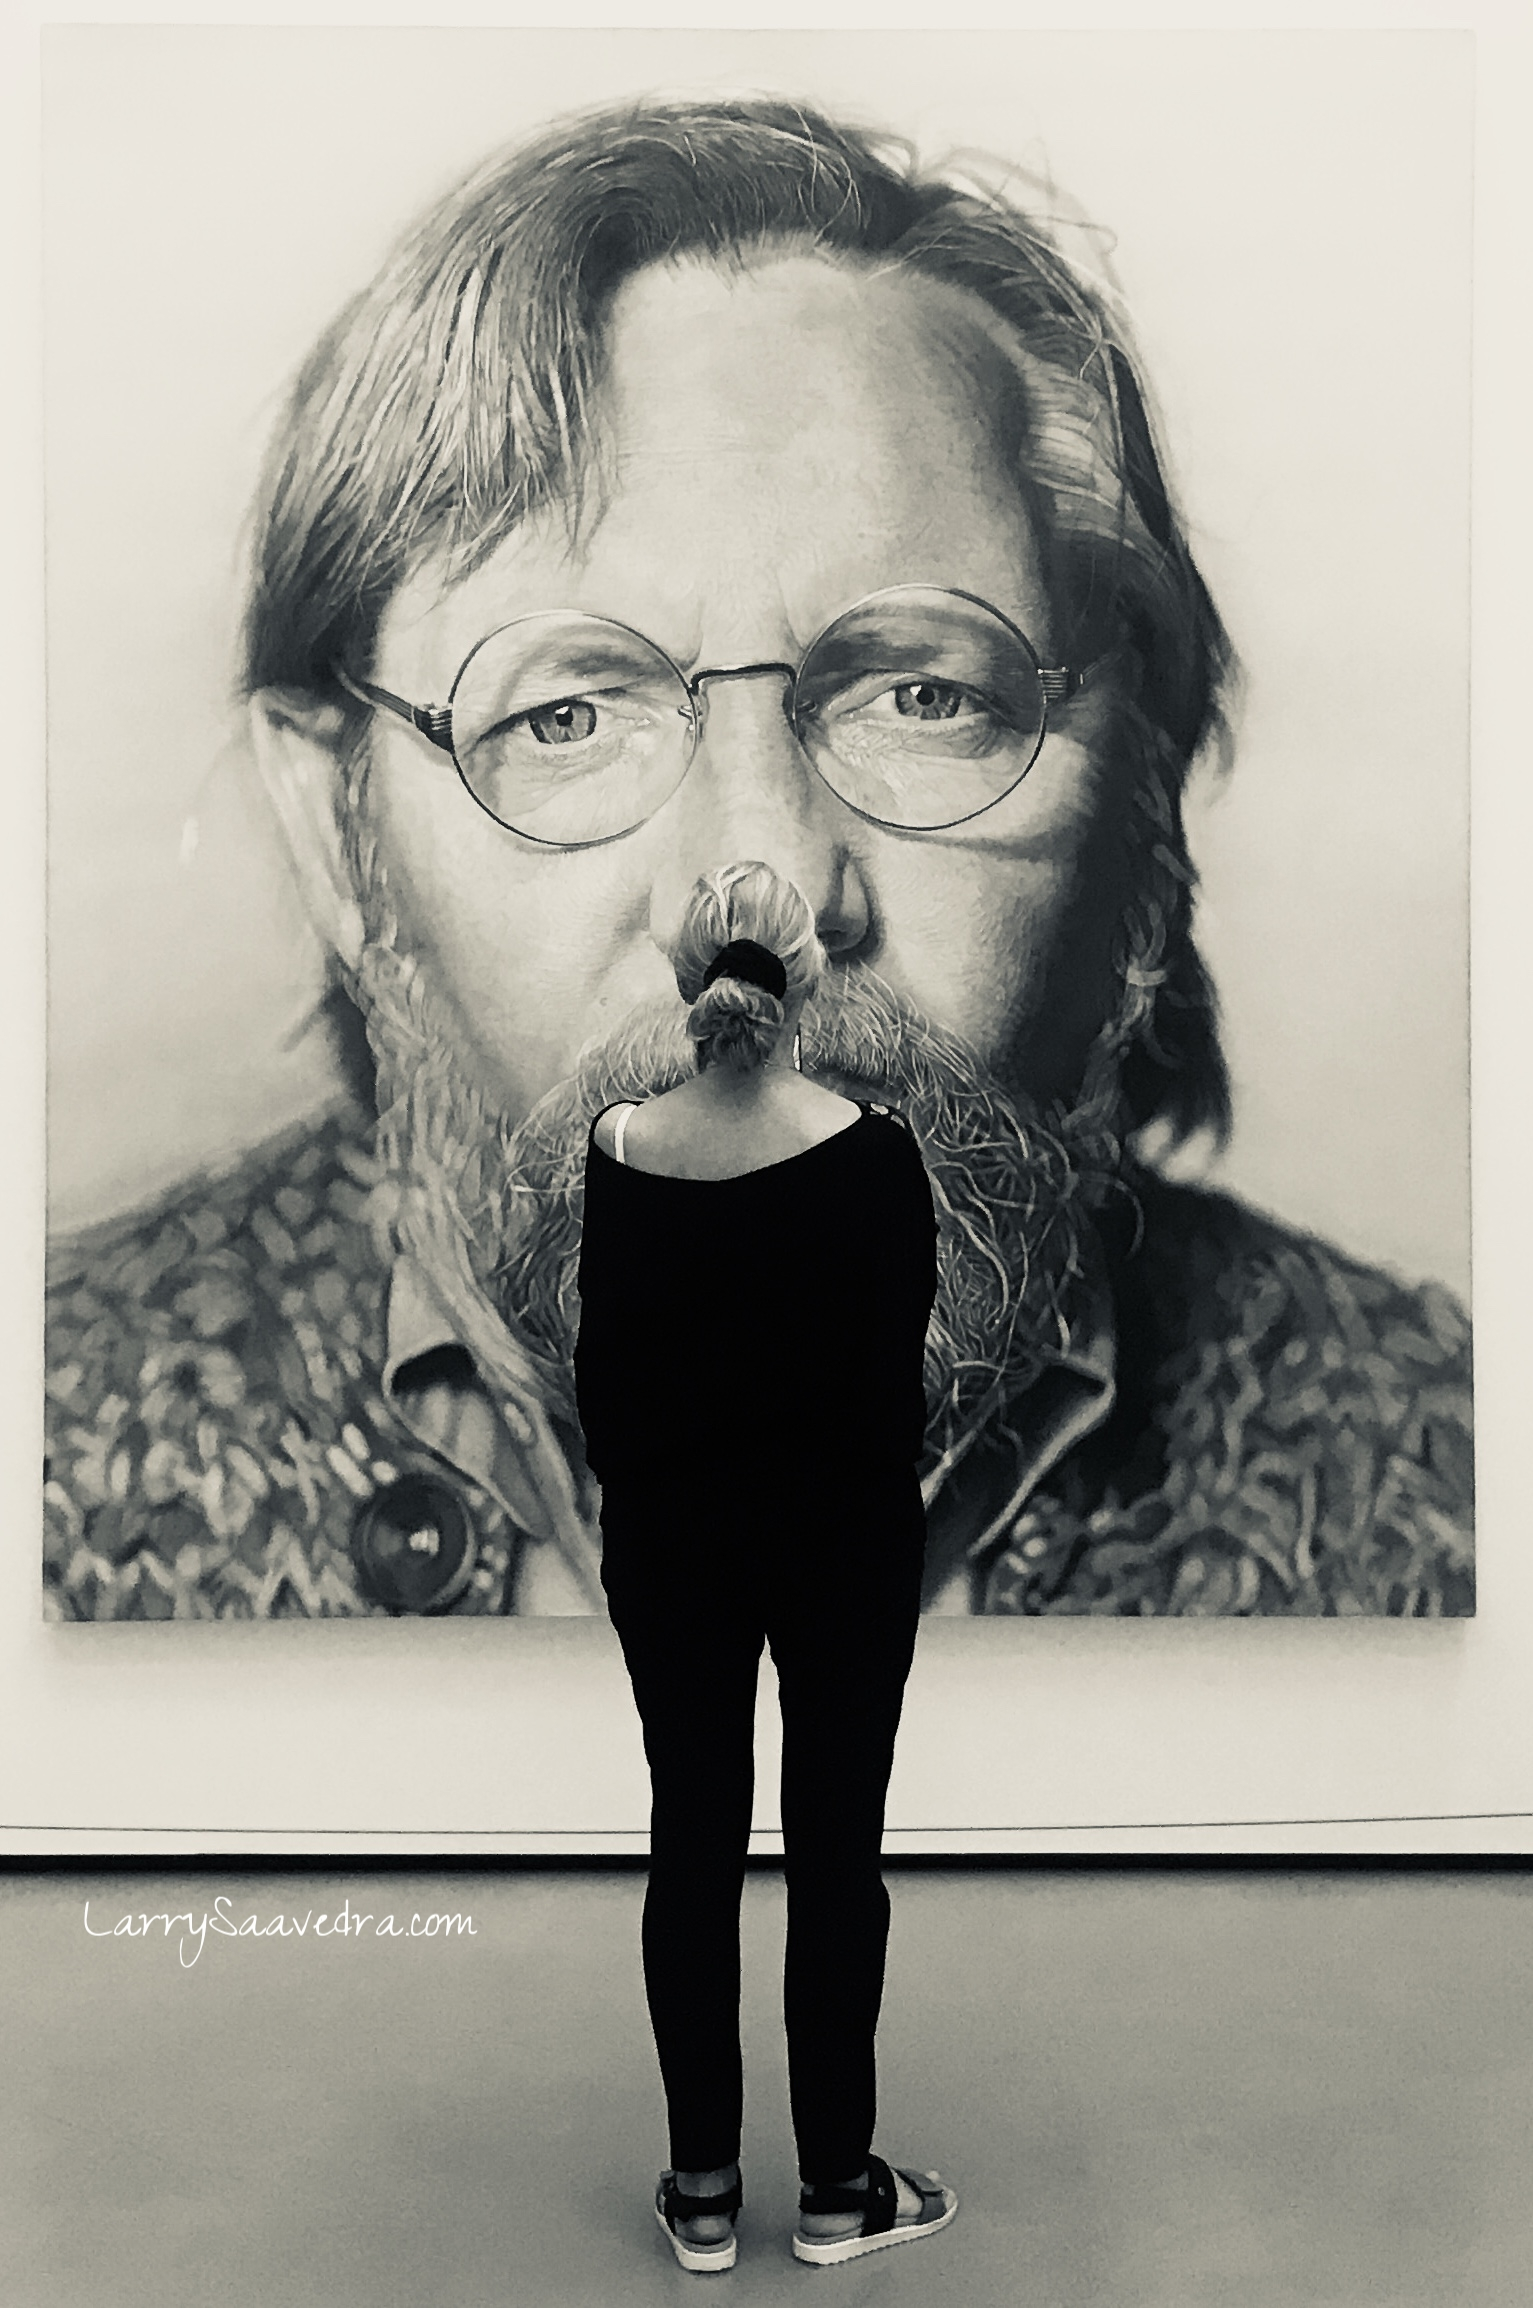 #metoo and the-accused. iPhone image in natural light. Work of artist Chuck Close at the Broad Museum in LA on display after being accused of harassment.